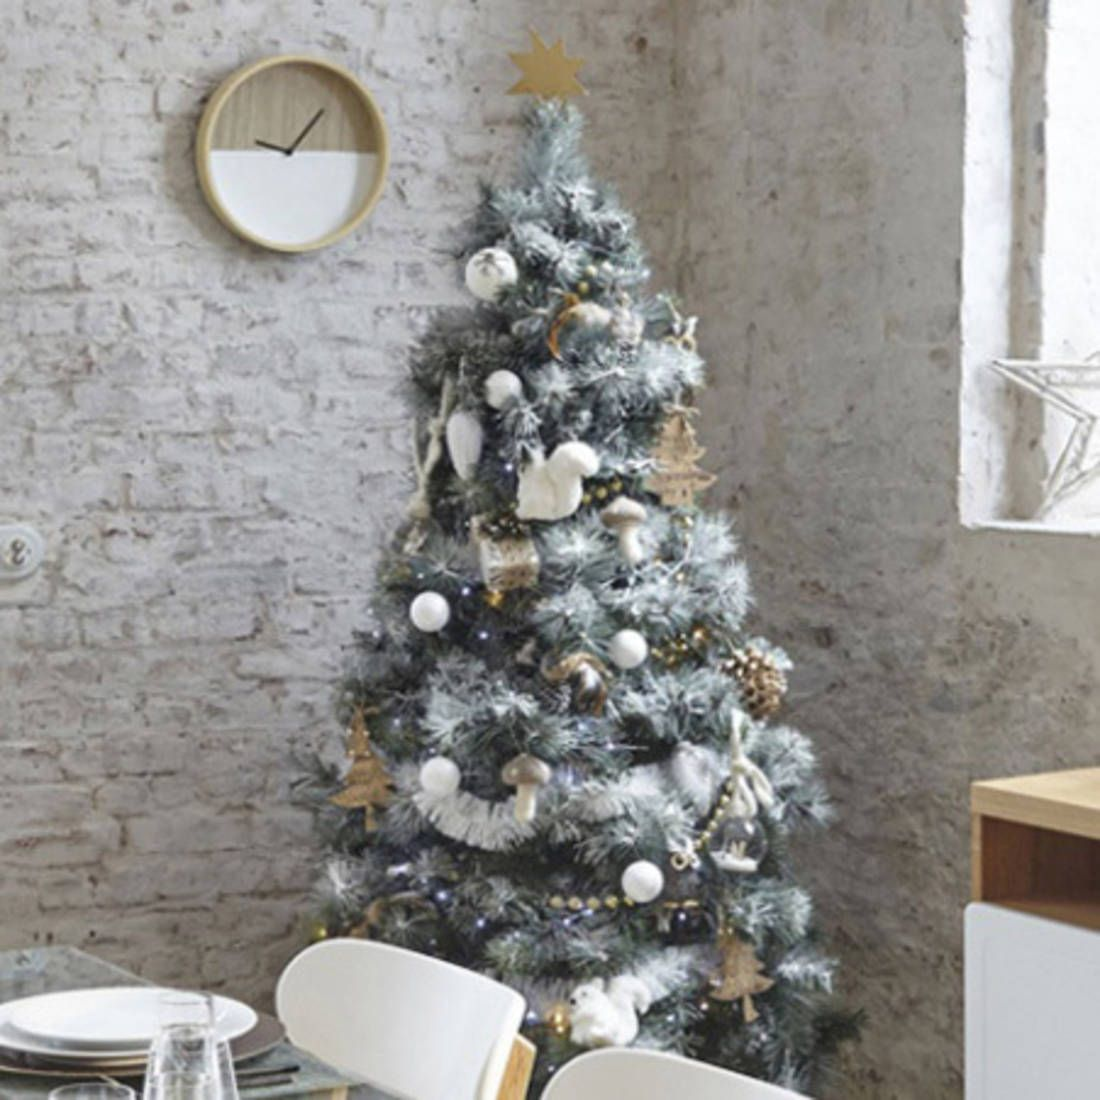 les 40 sapins de no l qu on copie elle d coration no l christmas spirit pinterest. Black Bedroom Furniture Sets. Home Design Ideas